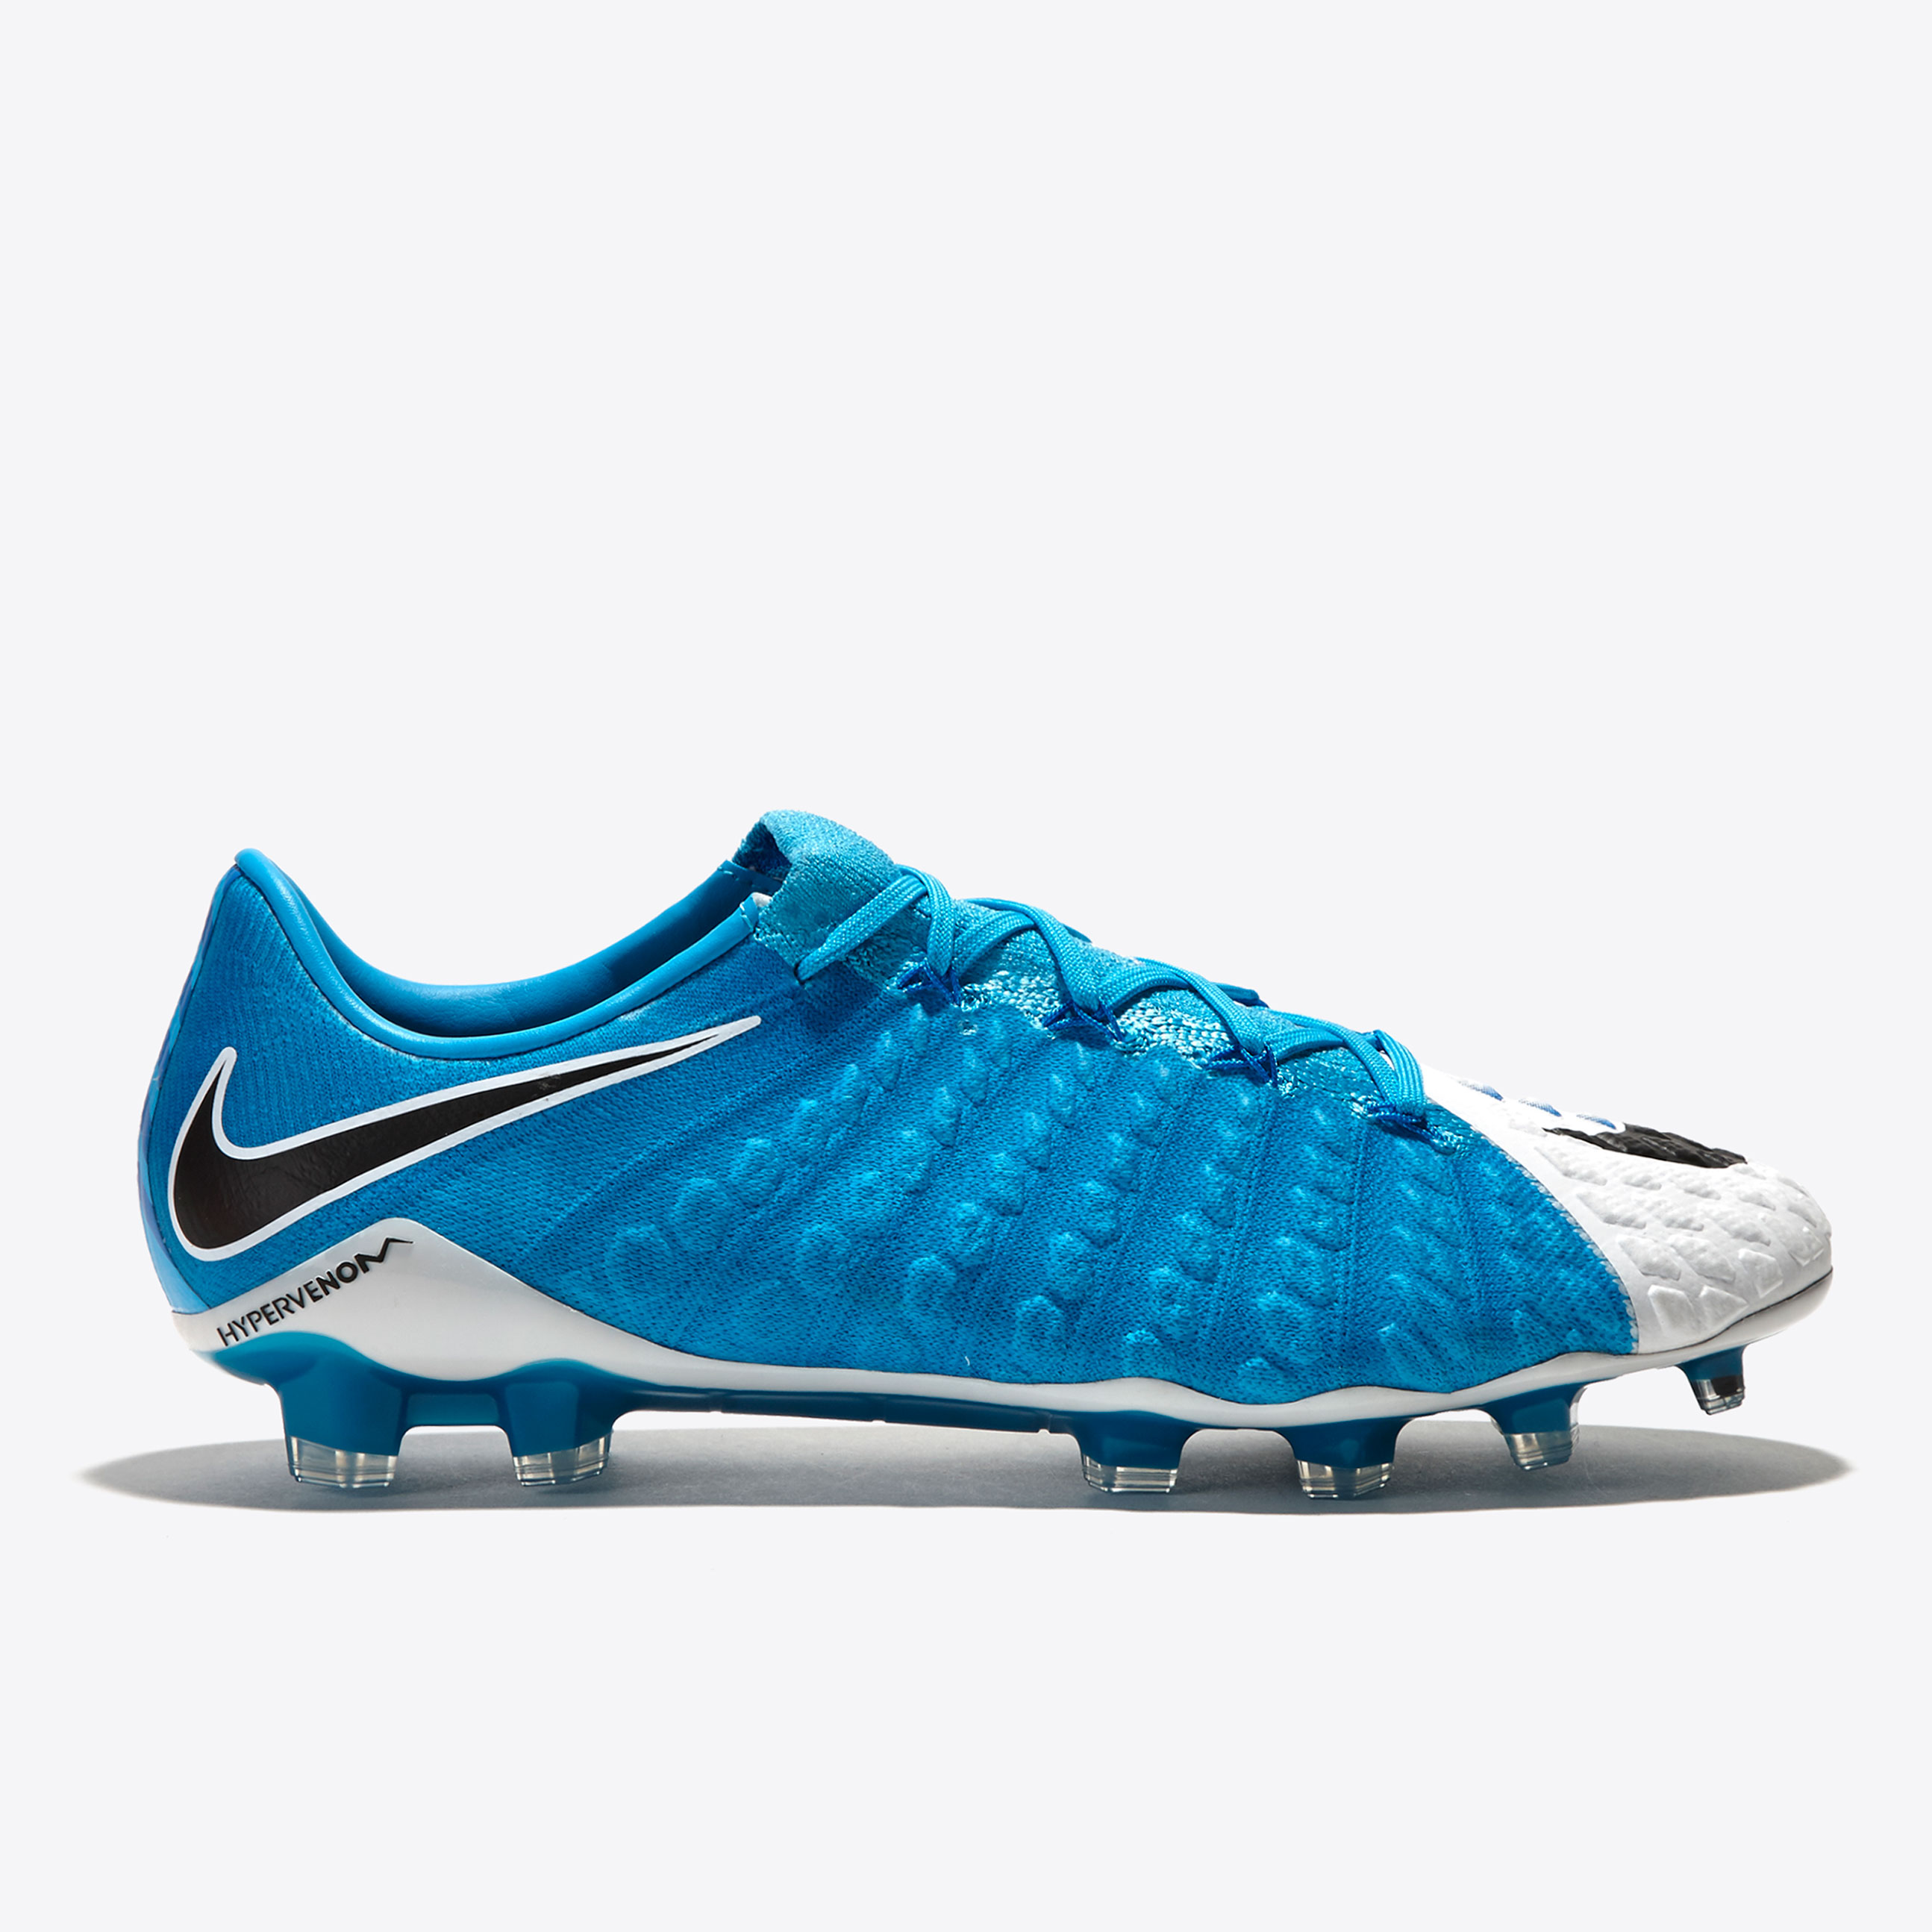 27157fc7f11 Buy Nike Hypervenom Rugby Boots - compare prices